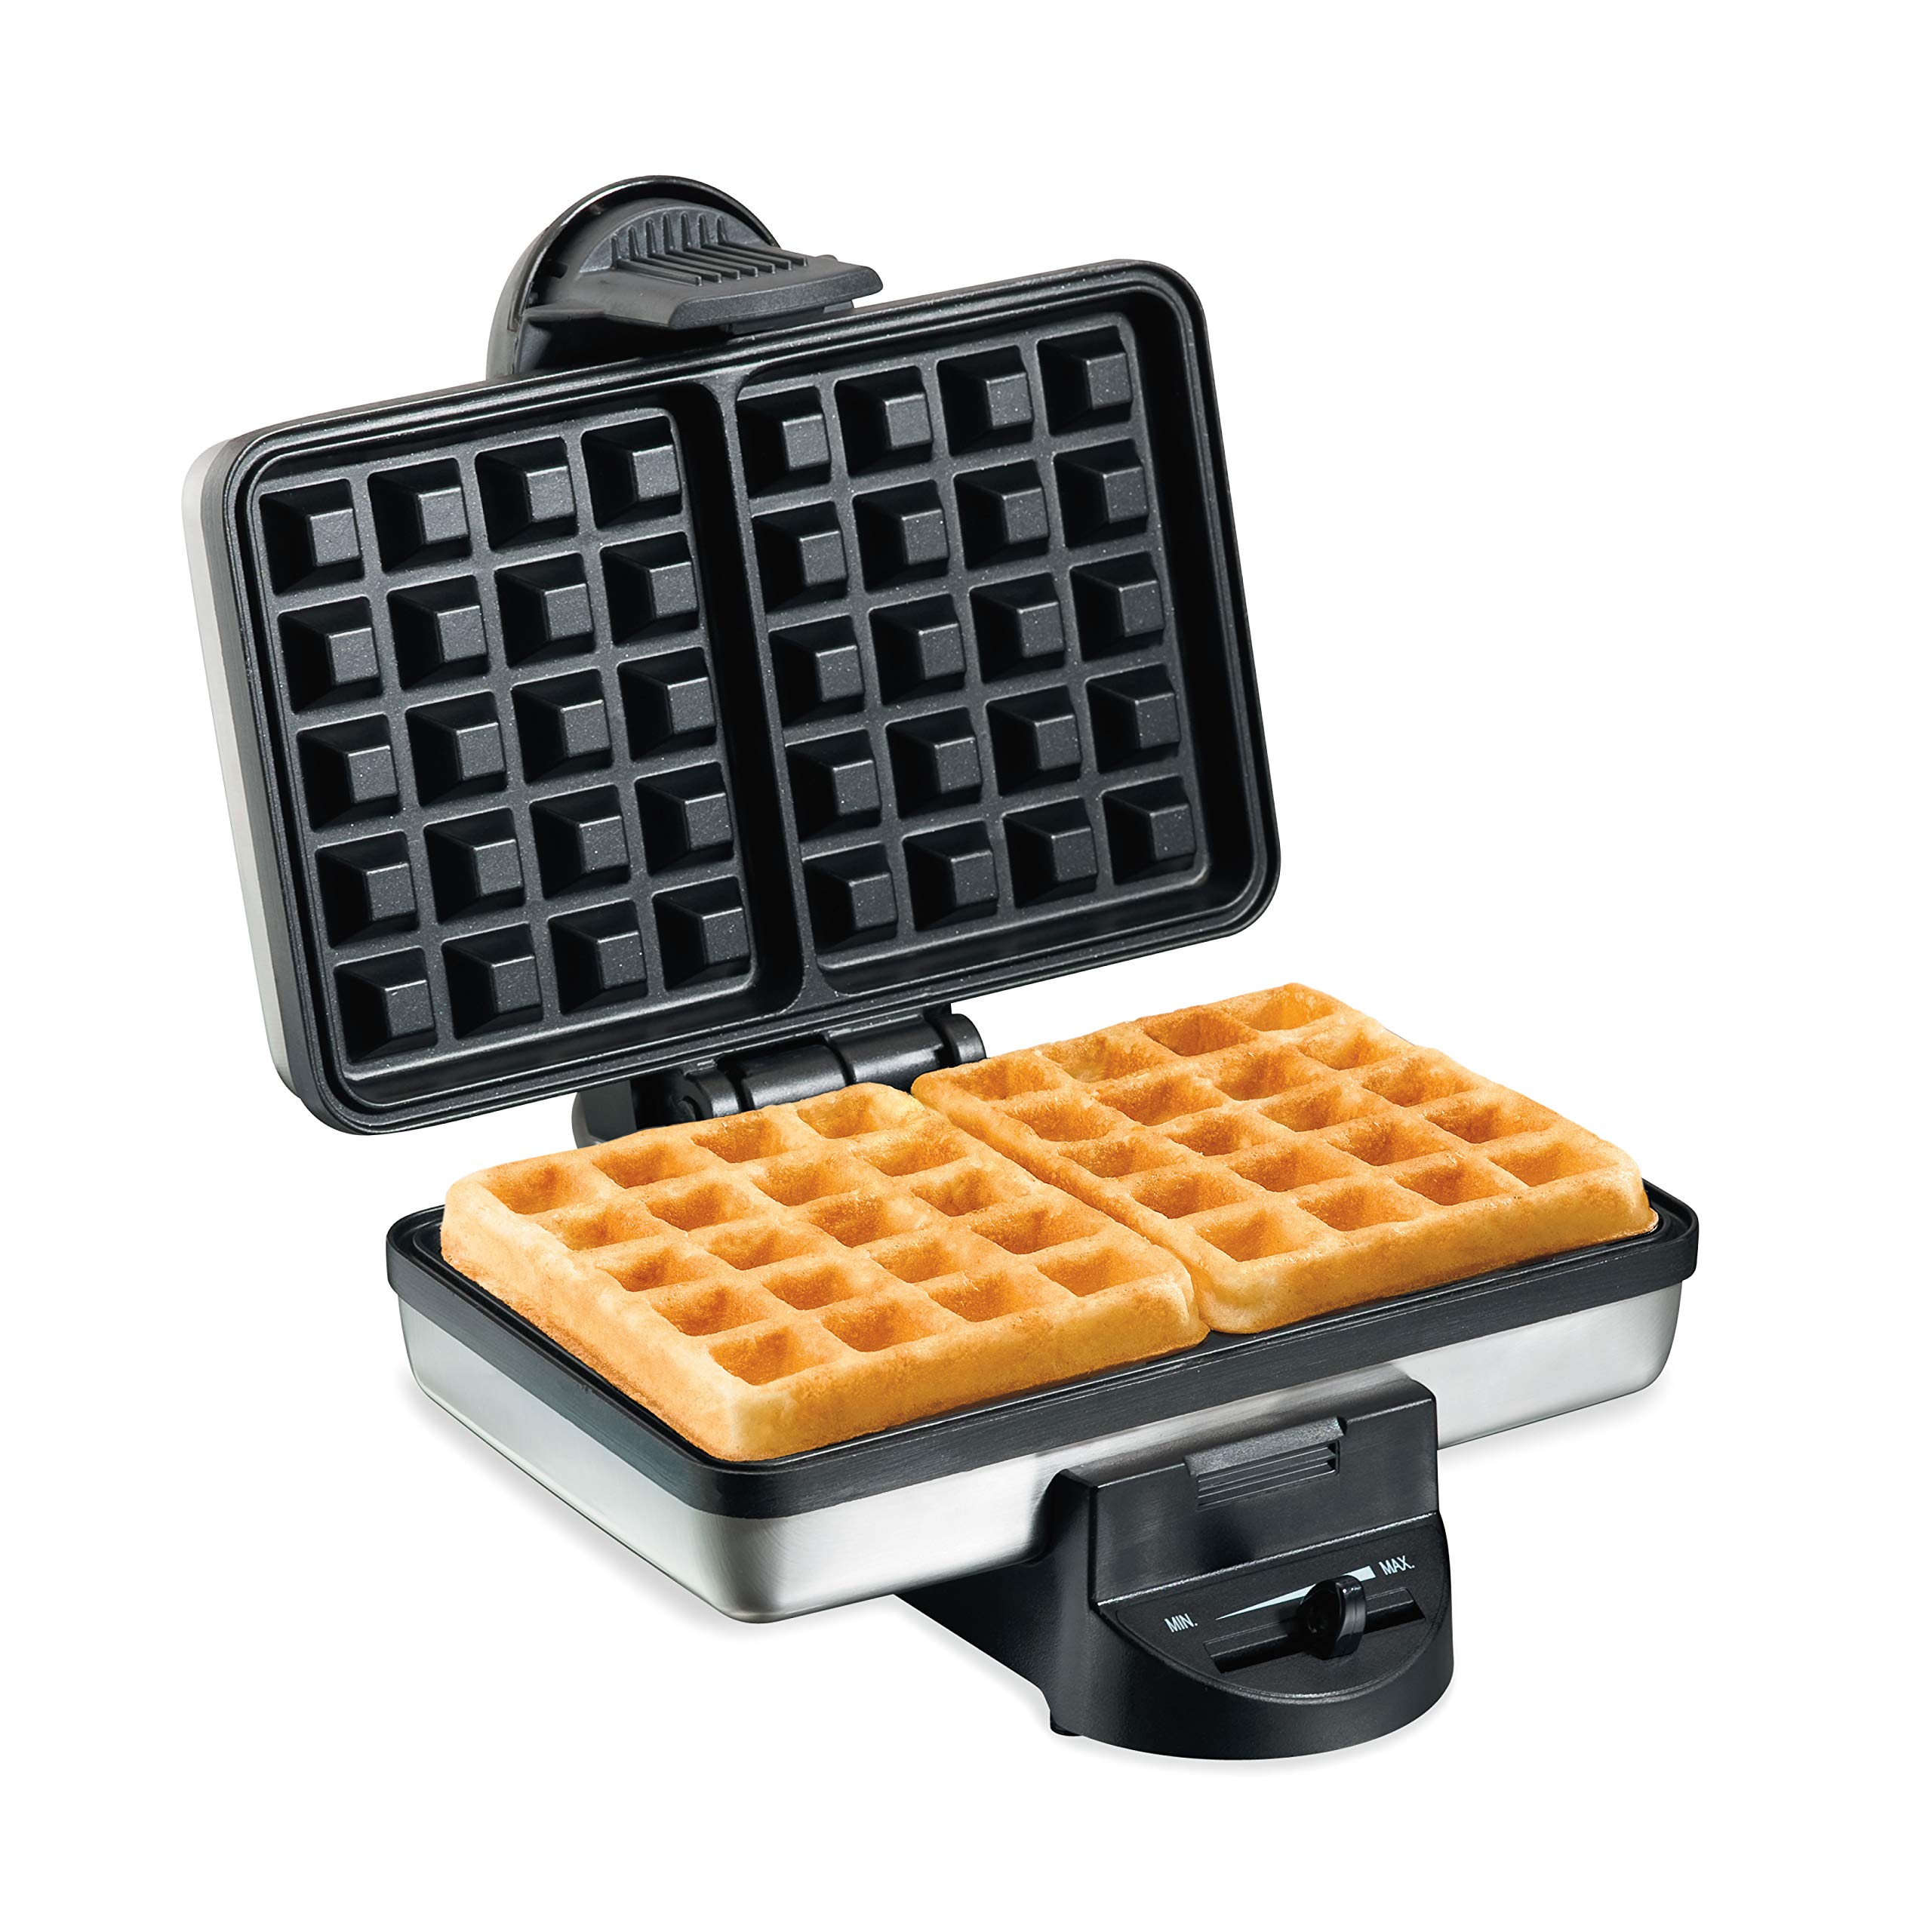 Hamilton Beach 2-Slice Non-Stick Belgian Waffle Maker with Browning Control